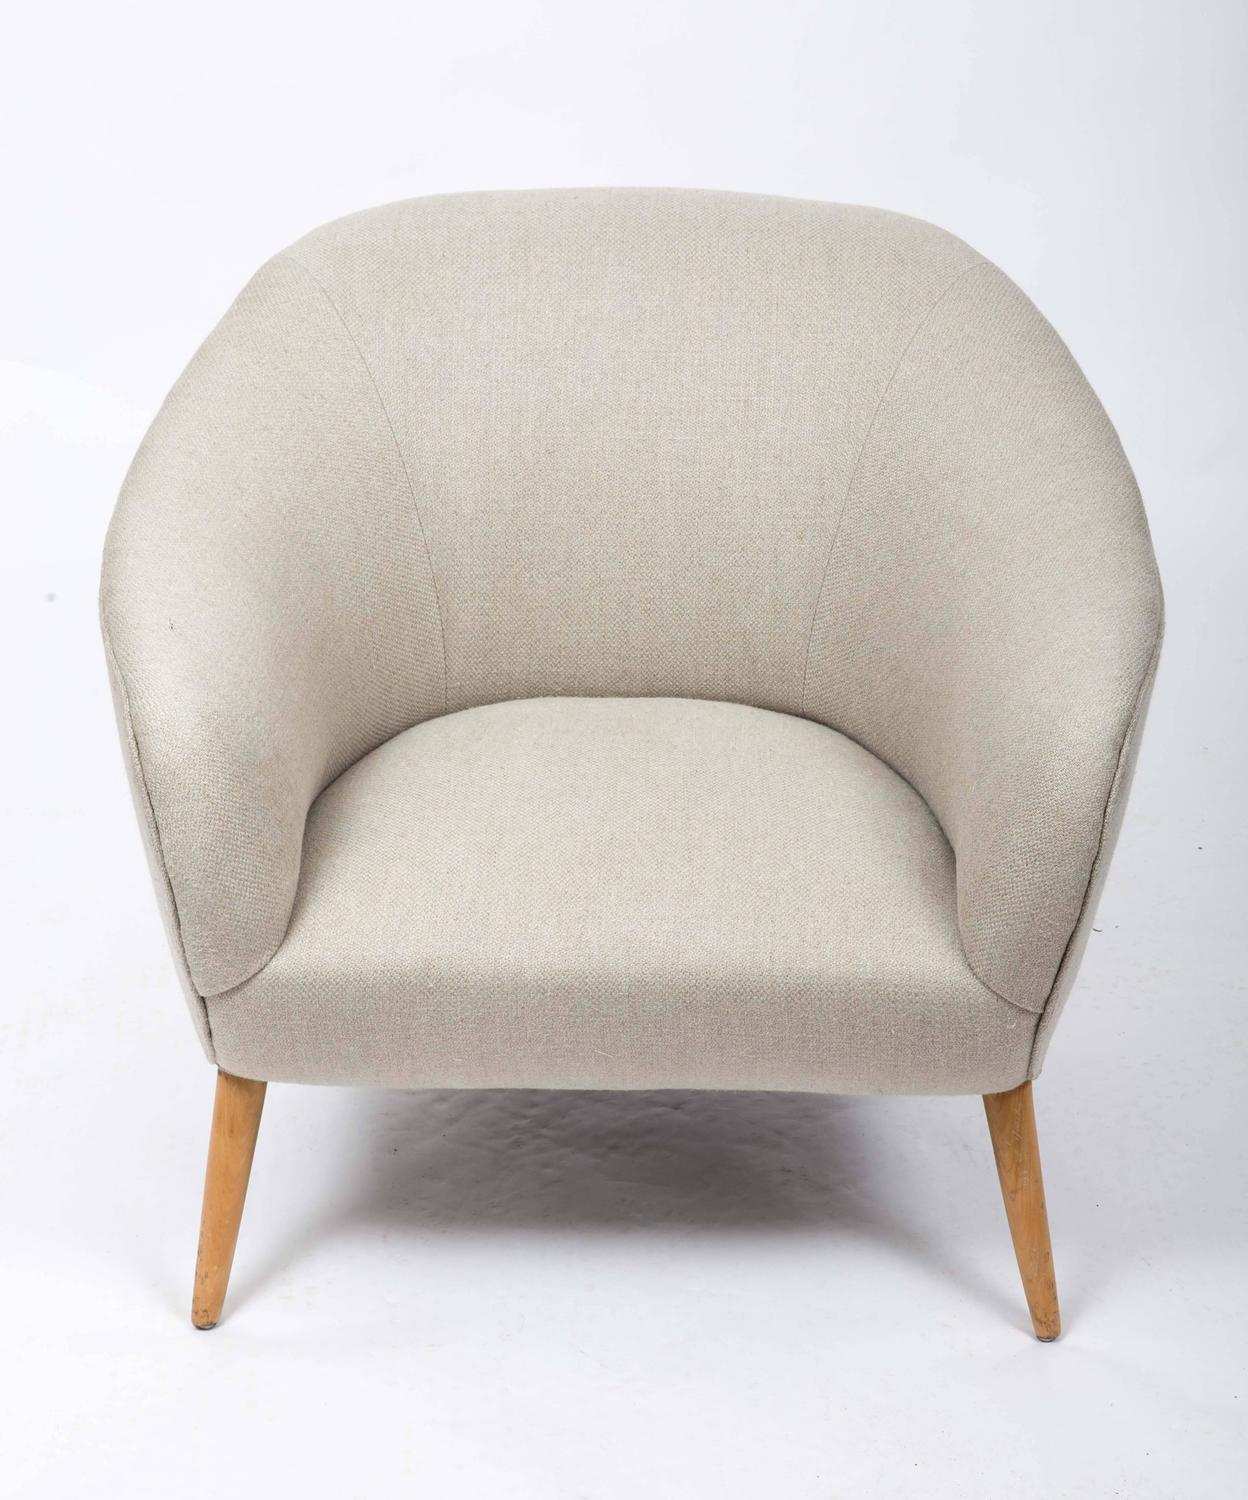 metal tub chair folding quad mid century for sale at 1stdibs